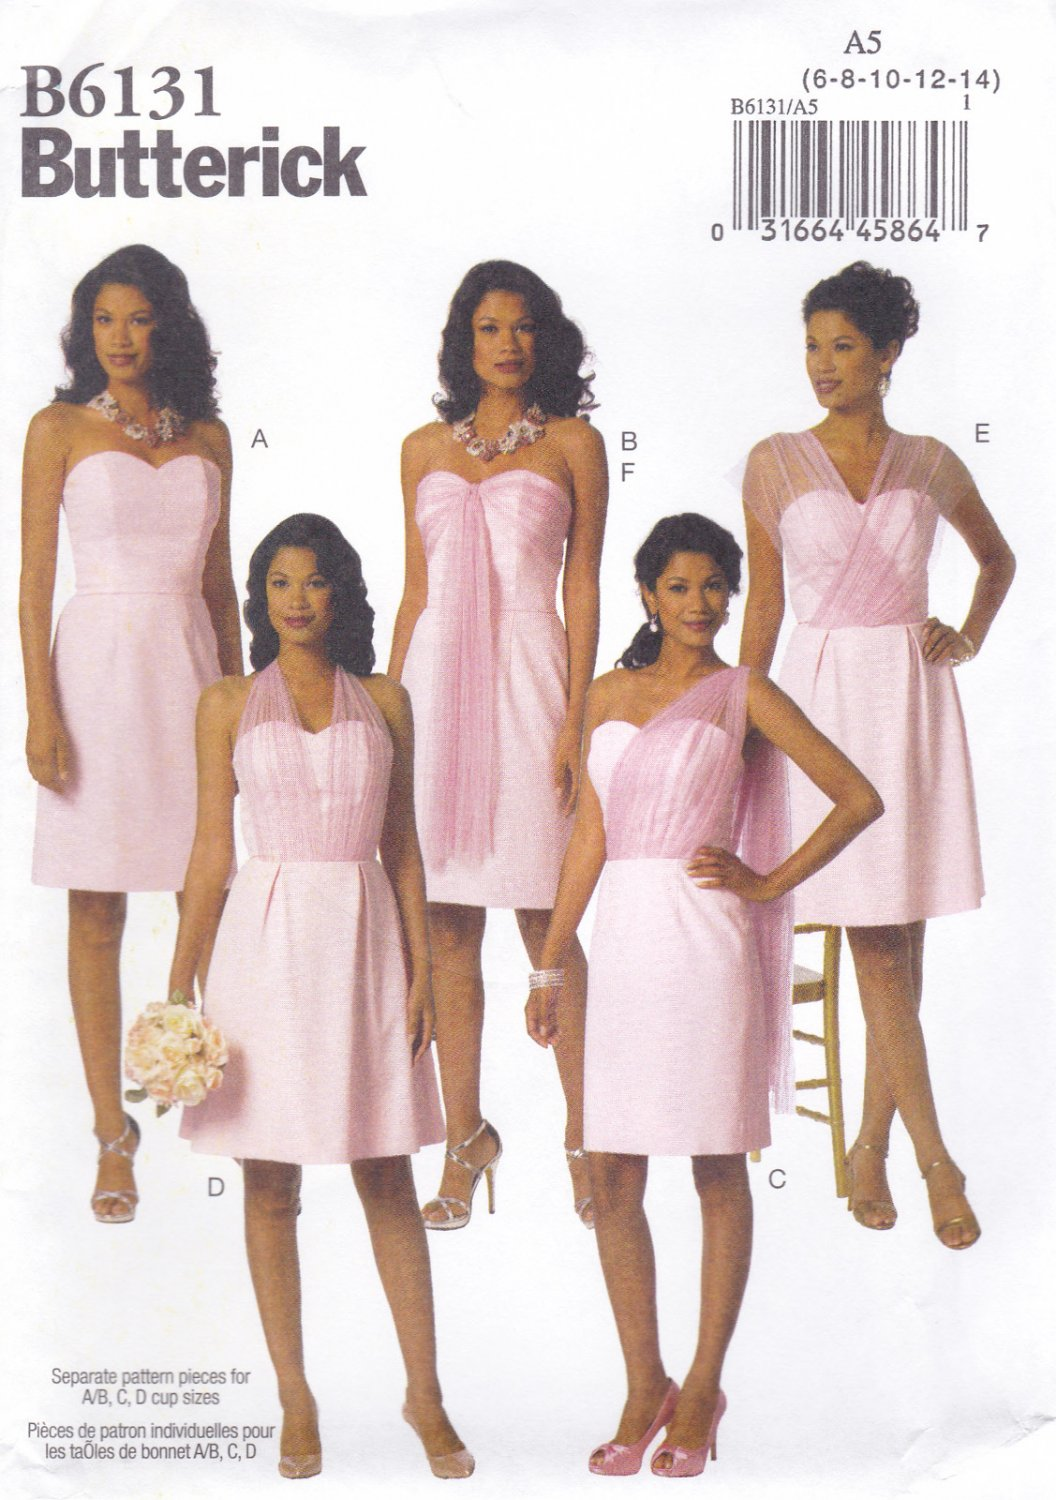 9547a7fc824 Butterick B6131 6131 Misses Dresses Sash Strapless Sewing Pattern  Semi-Formal Sizes 6-8-10-12-14